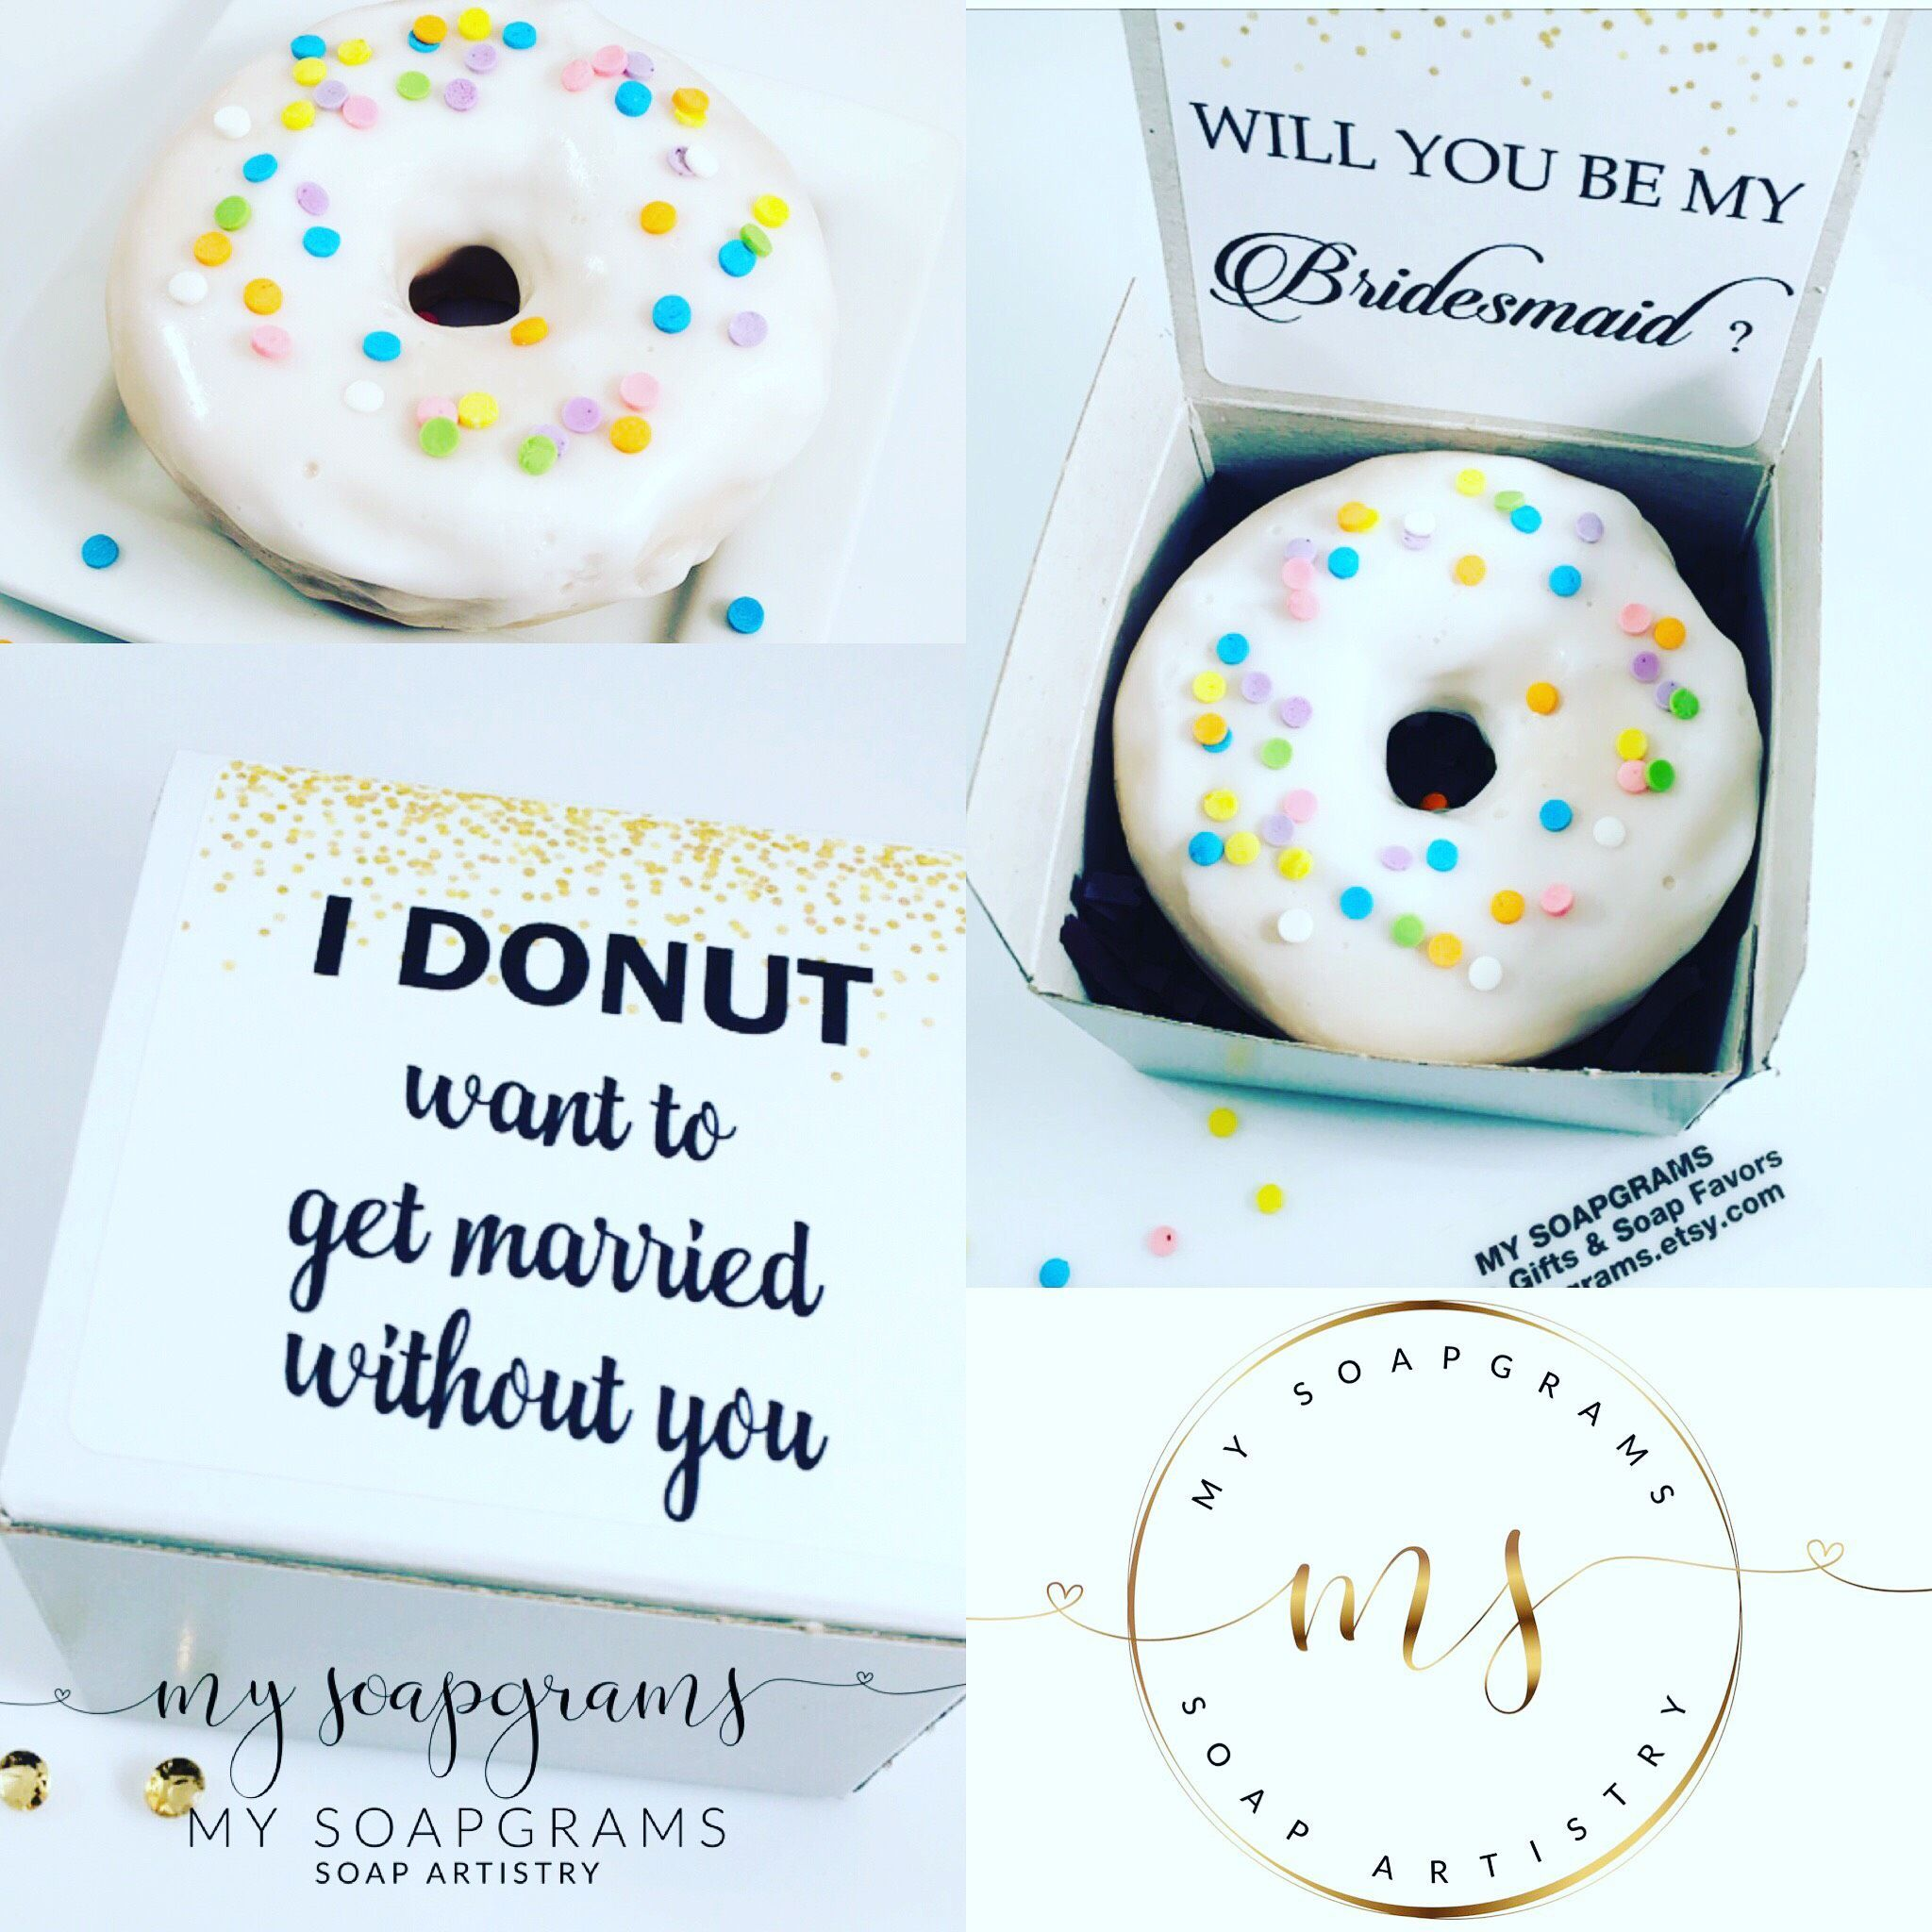 What Do You Get Your Bride For A Wedding Gift: Wedding Party Proposal Maid Of Honor Proposal Will You Be